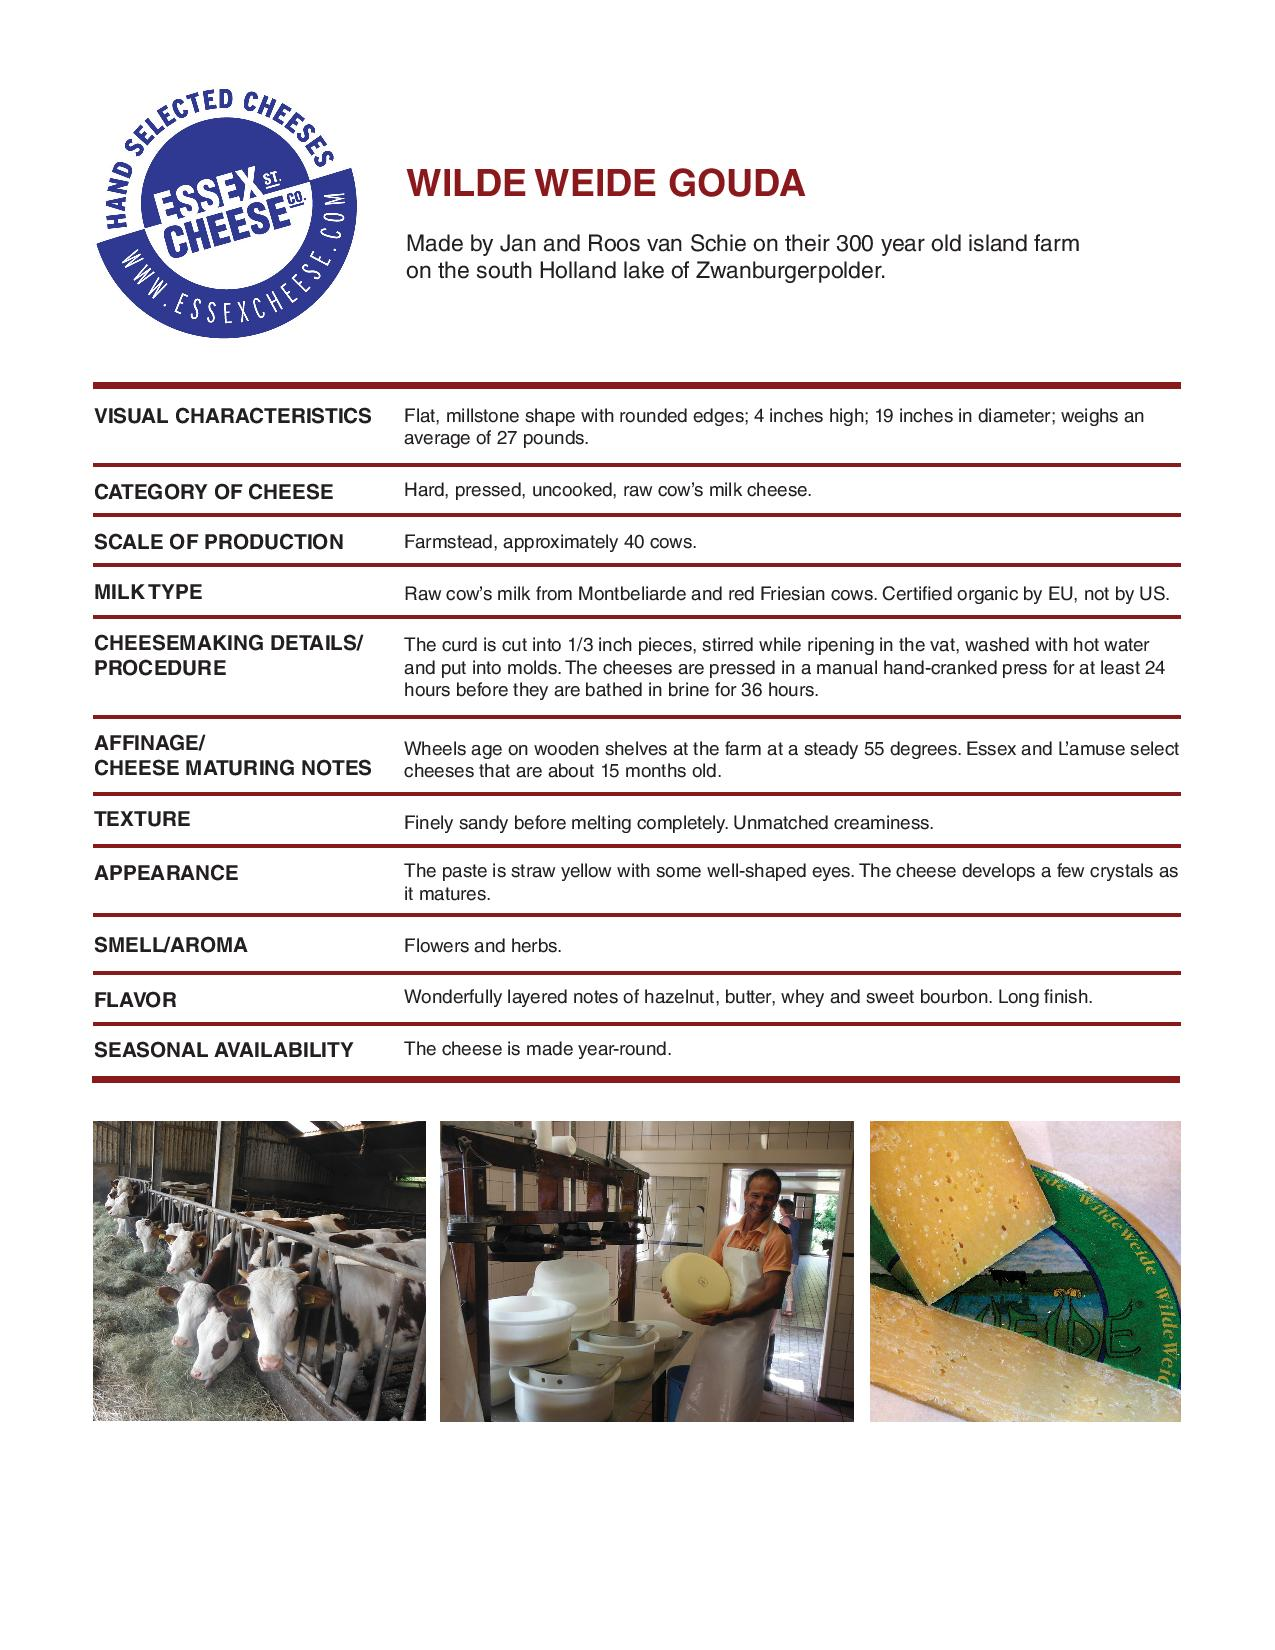 Wilde Weide Gouda Specifications - The one-of-a-kind gouda made on a 300 year old island farm. 8.5 x 11 inch PDF to download and print for training and reference.